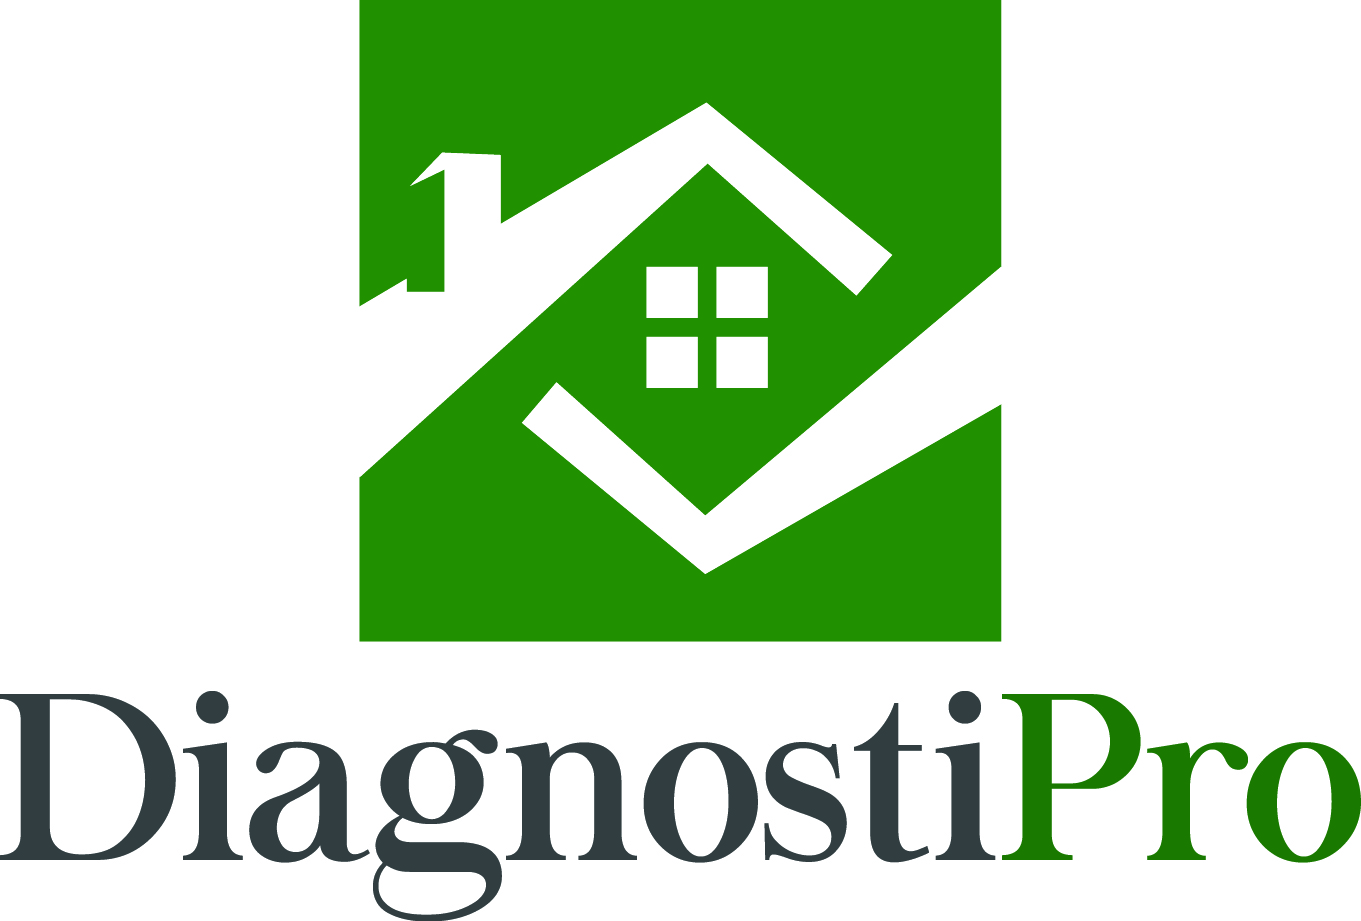 DIAGNOSTIPRO